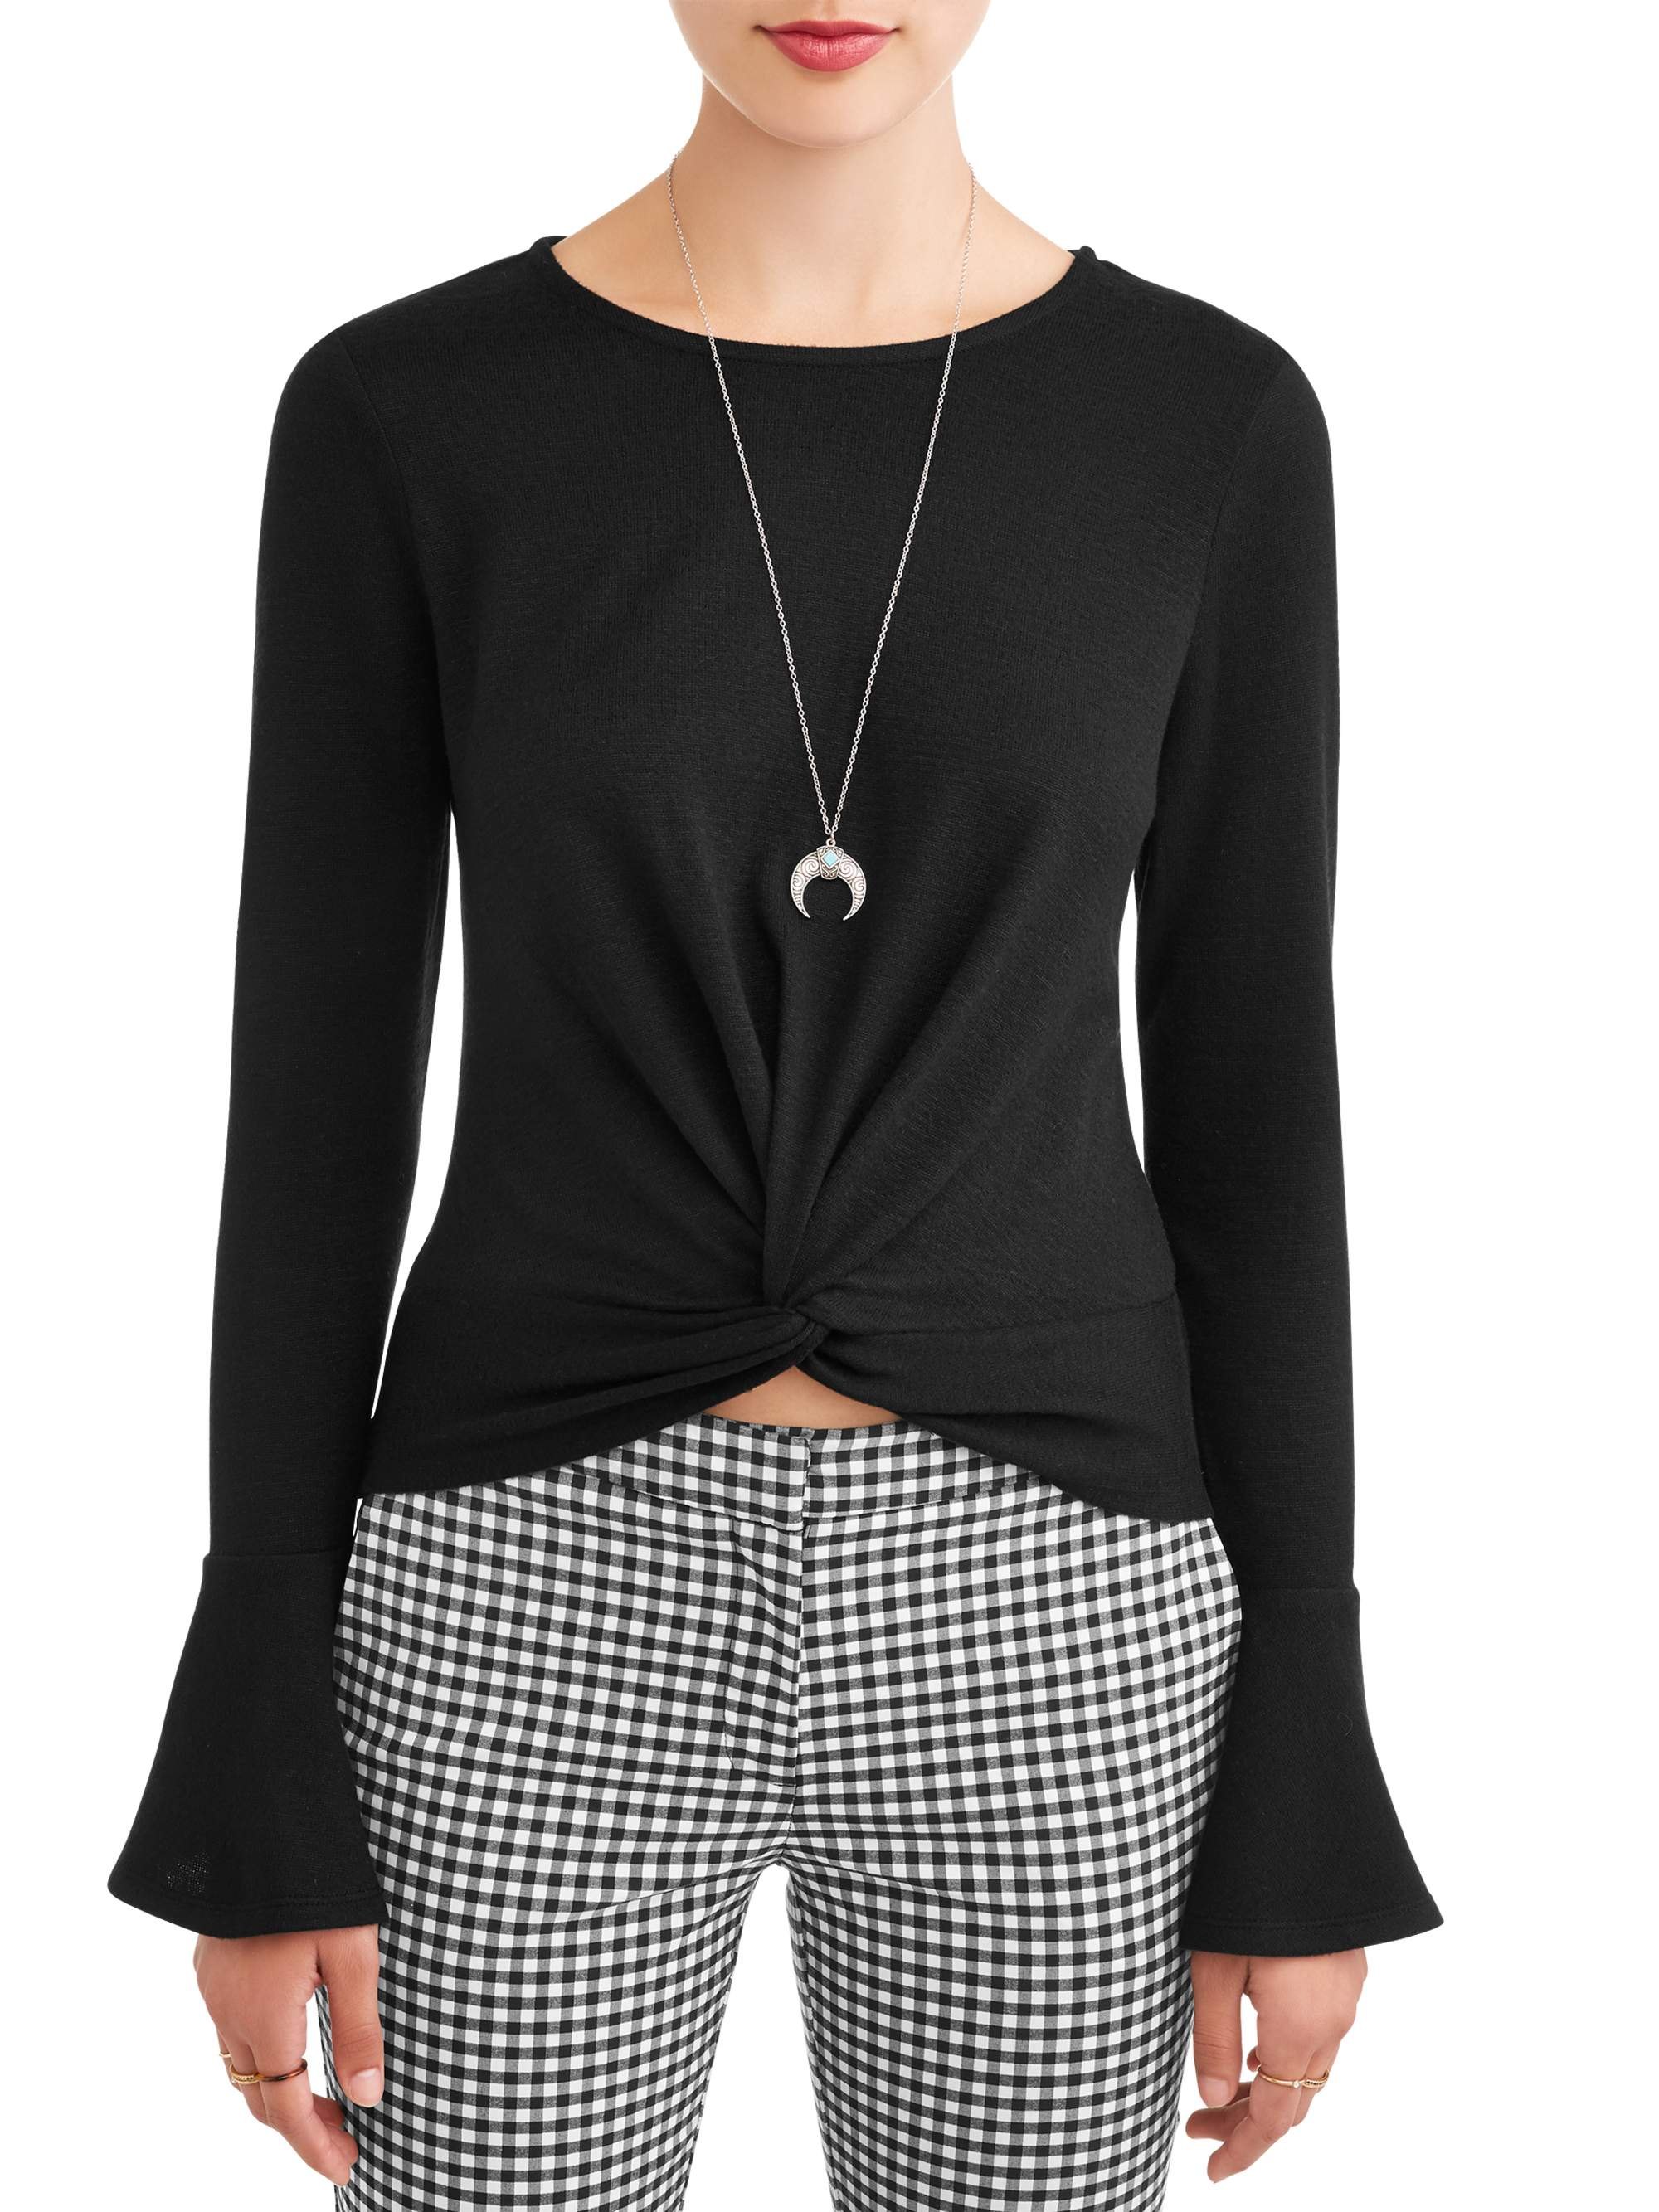 Juniors' Twisted Front Bell Sleeve Blouse with Necklace 2fer